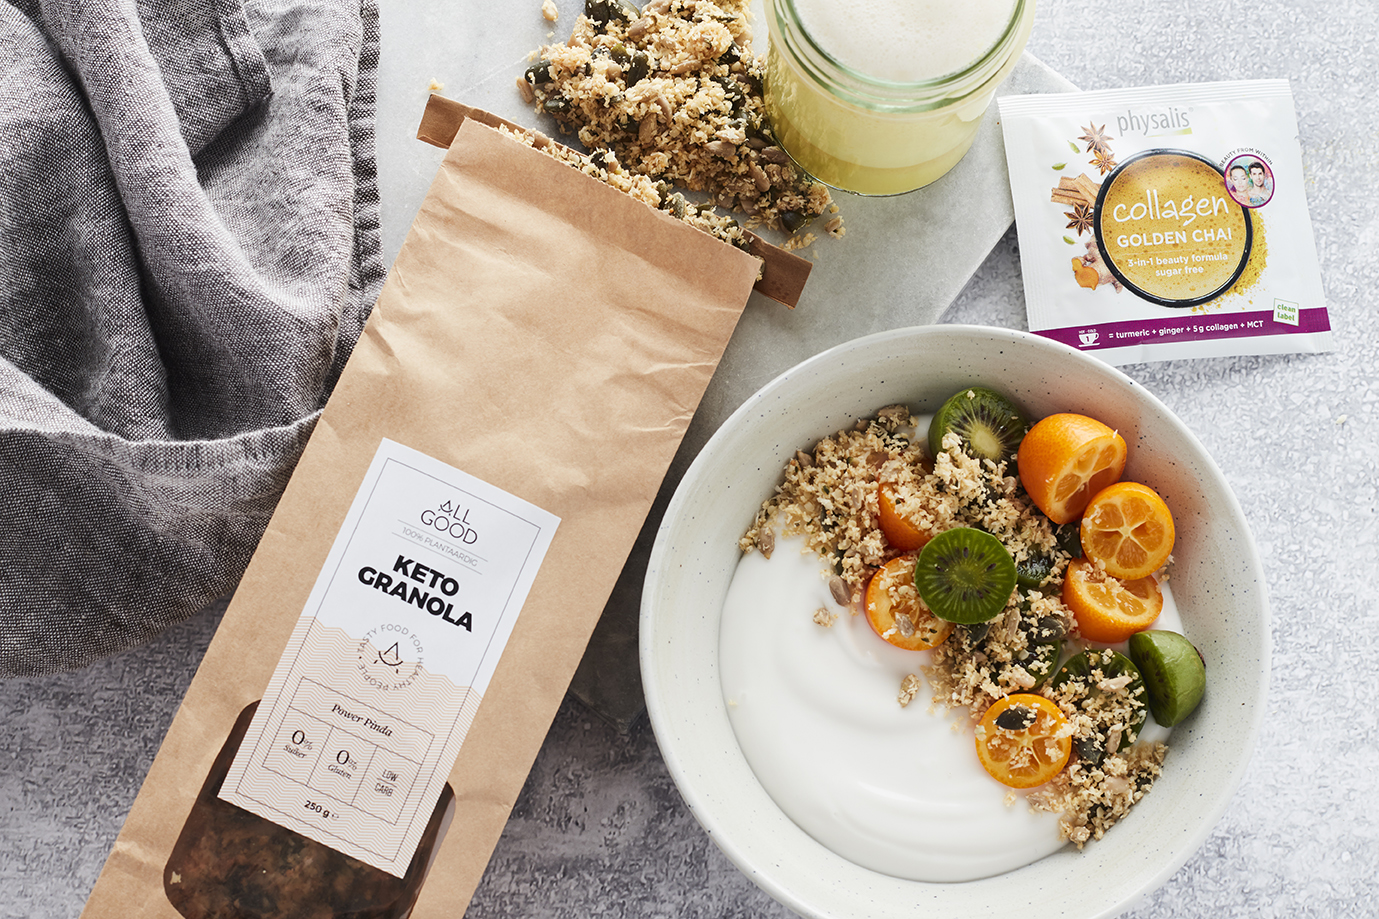 Nieuw! ALL GOOD Christmas Keto Box (Limited Edition) + Recepten voor Golden Chai Latte & Keto Granola Bowl